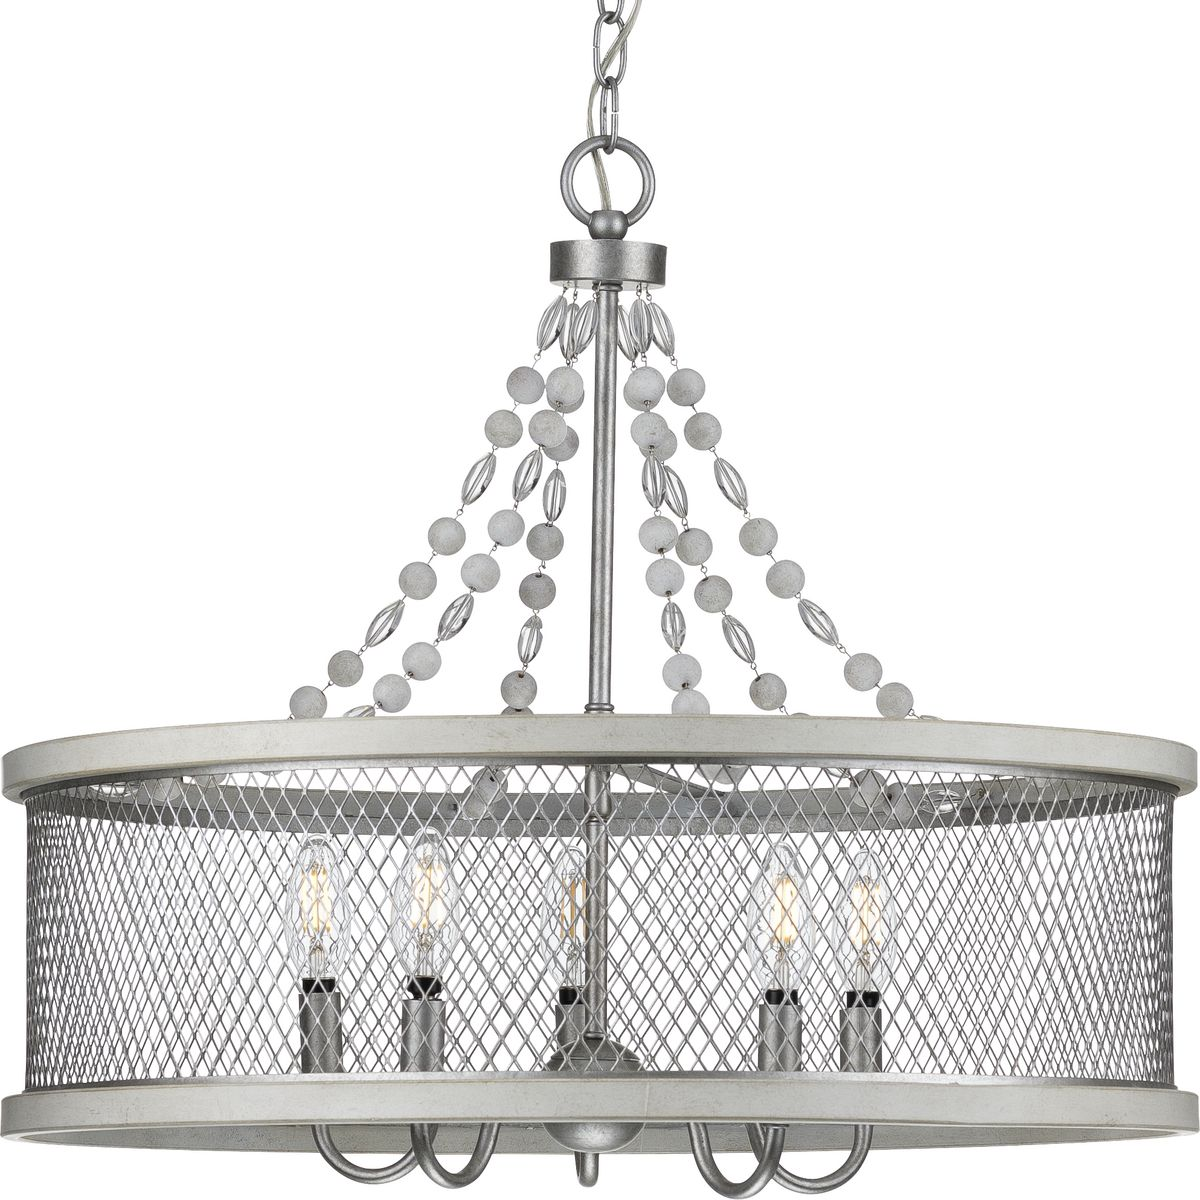 Austelle Collection Five Light Galvanized Chandelier P400205 141 Hubbell